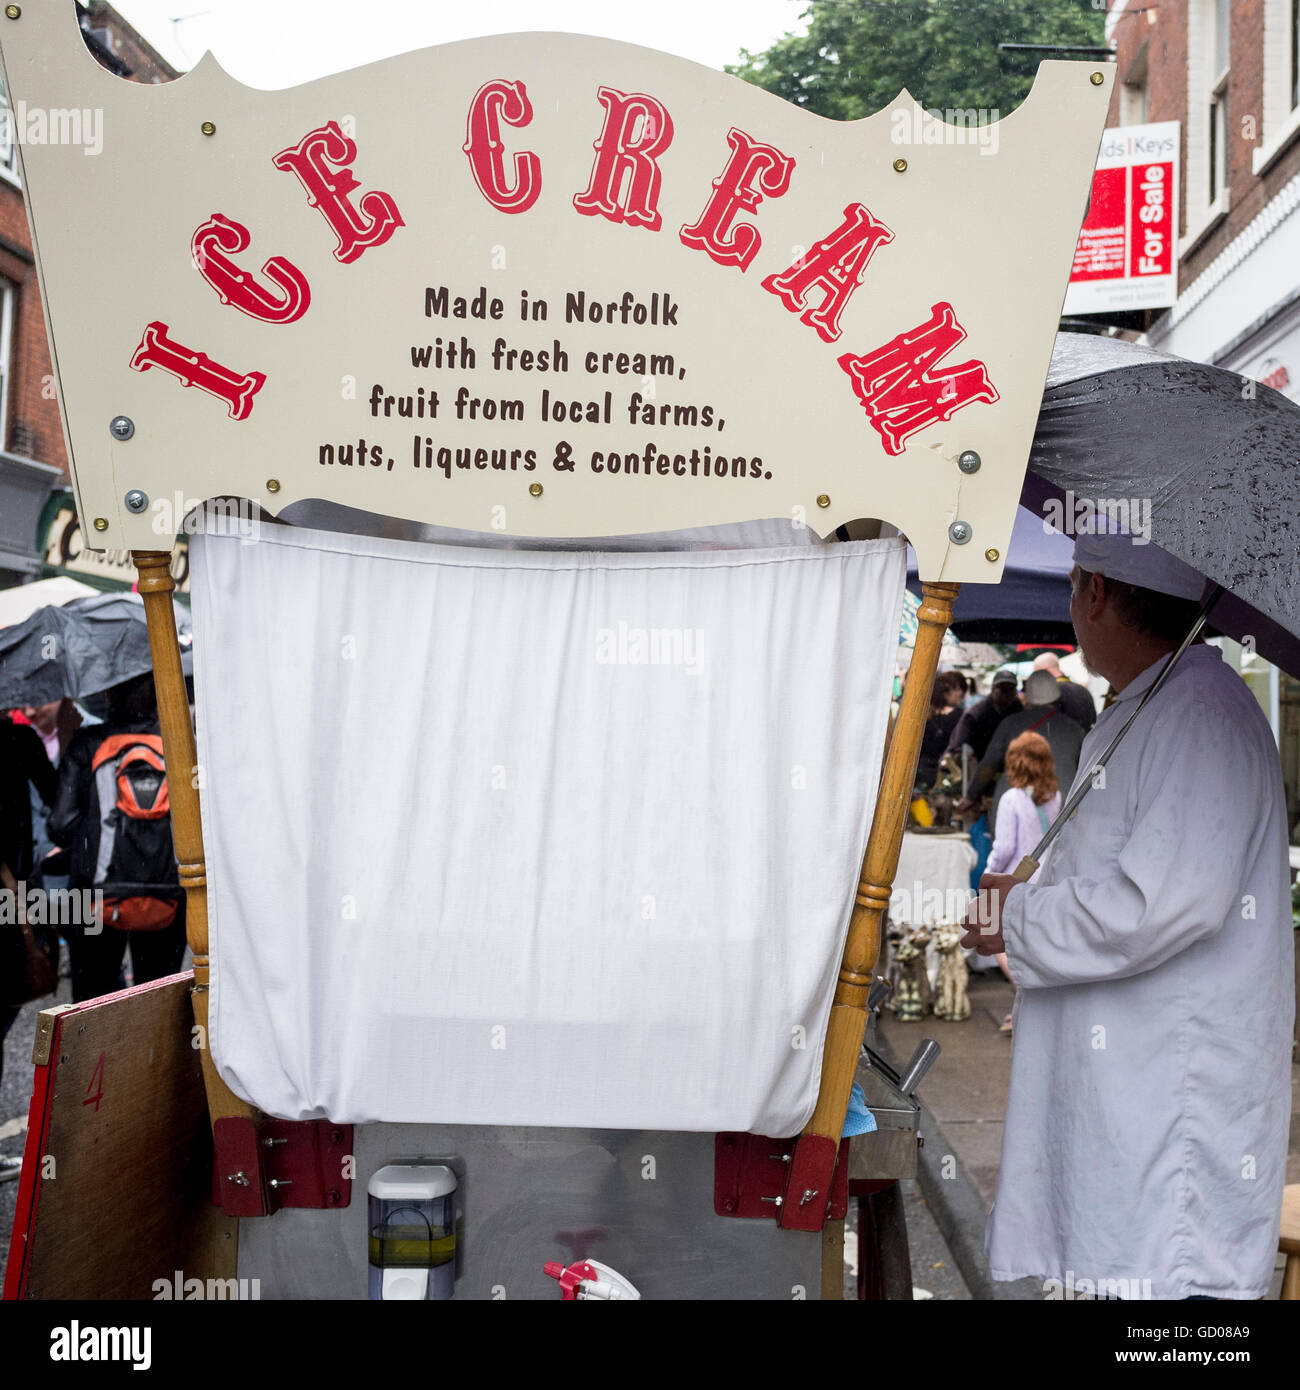 Ice cream man with his umbrella up at the 2012 Norwich Lanes Summer Fayre - Stock Image